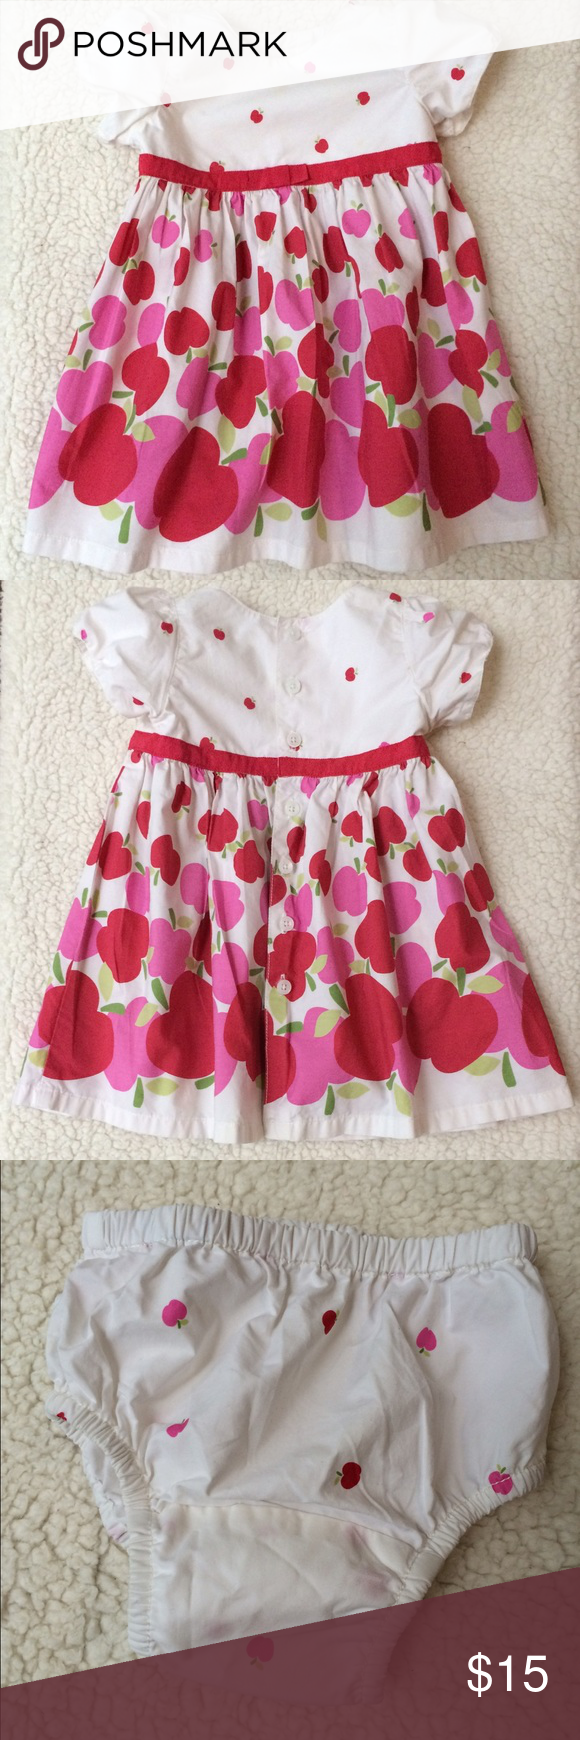 Pretty Little Apple Dress Red & Pink Apples on crisp white cotton dress, decorated with a red grosgrain ribbon bow sash! Matching Bloomers. This was my most favorite dress ever! Better to buy it before I change my mind... 🙃 Baby Gap Dresses Casual